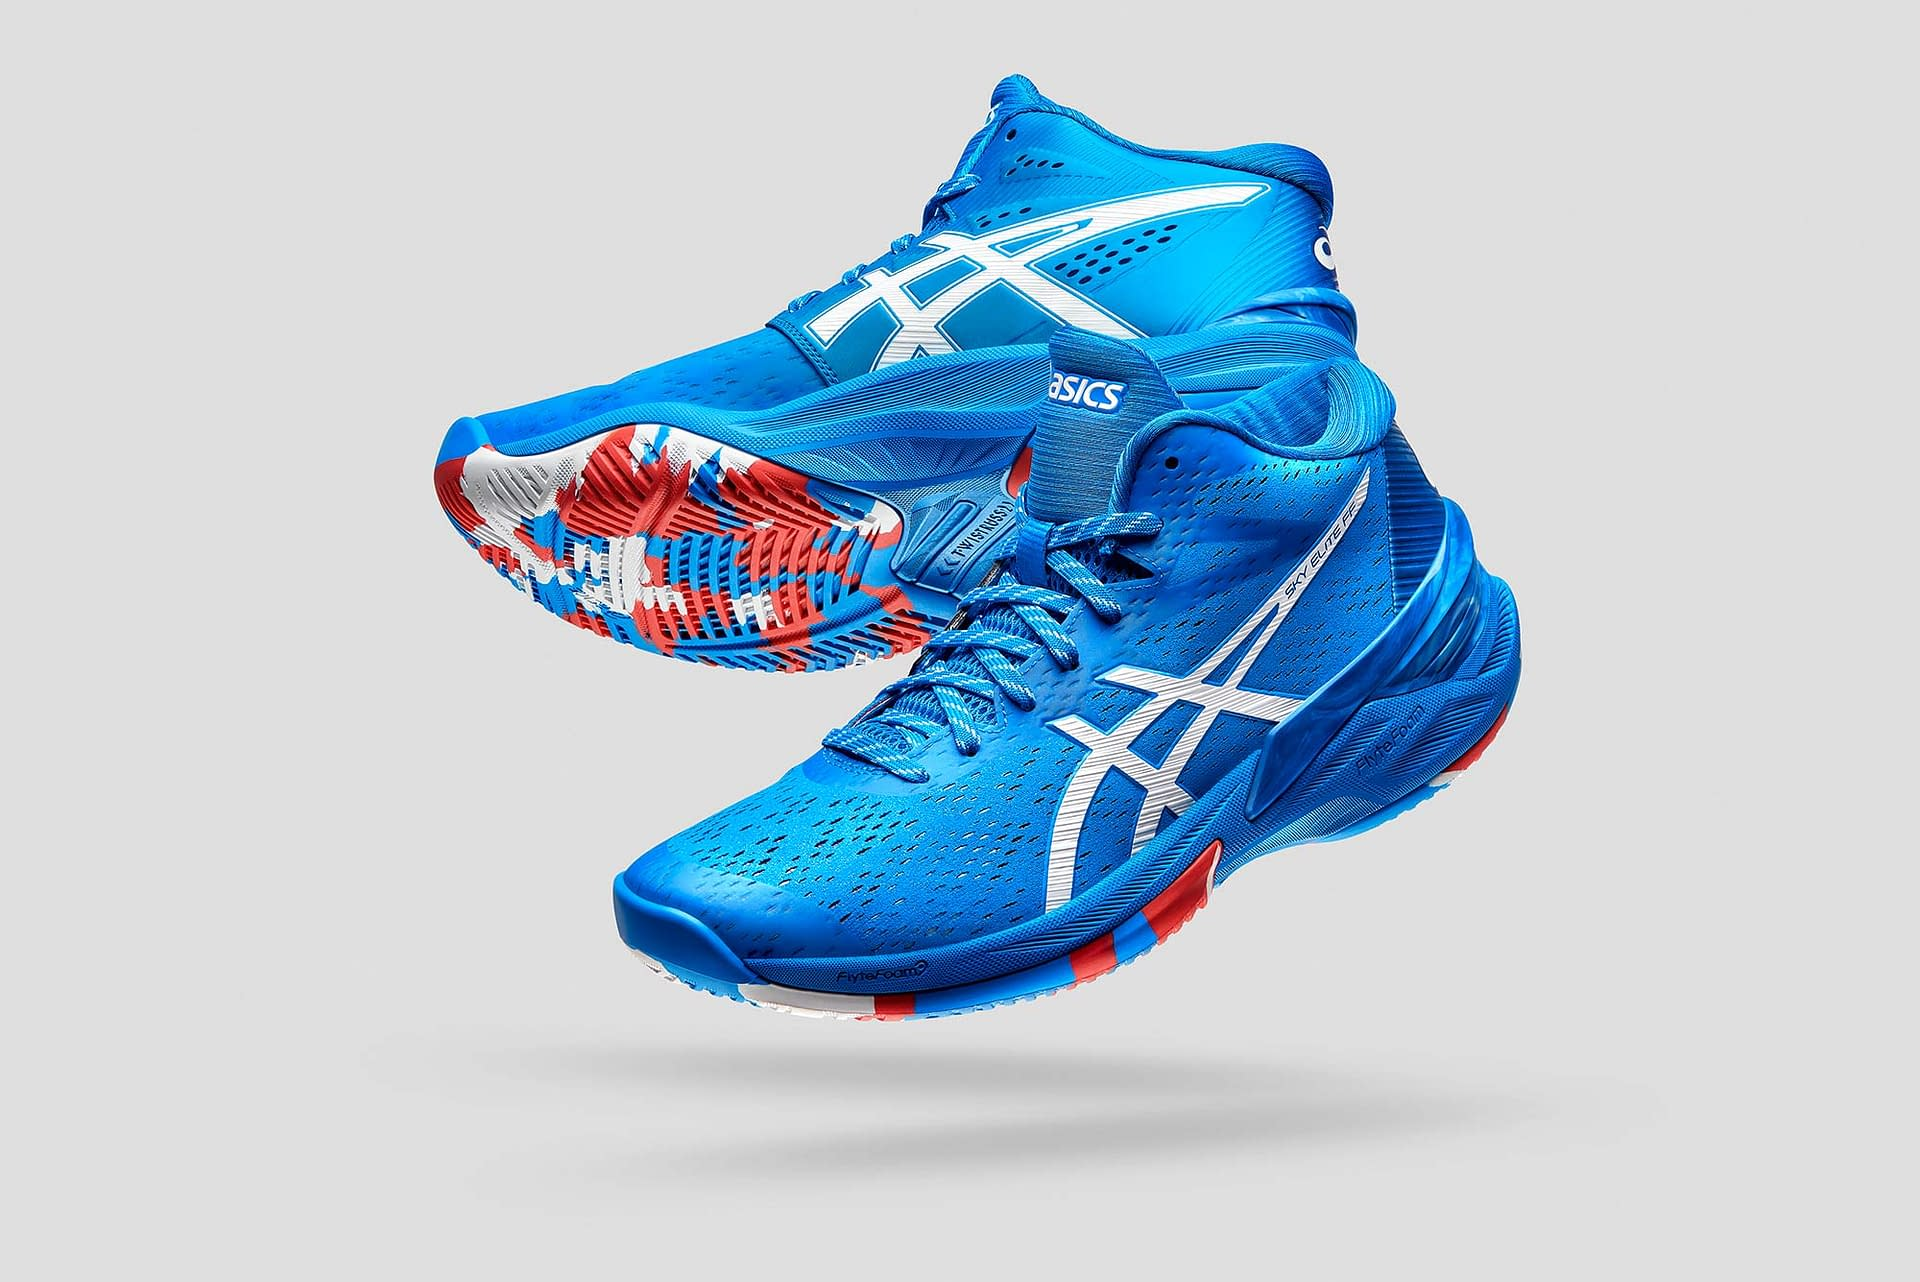 product photography; asics volleyball shoe 2020 commercial campaign